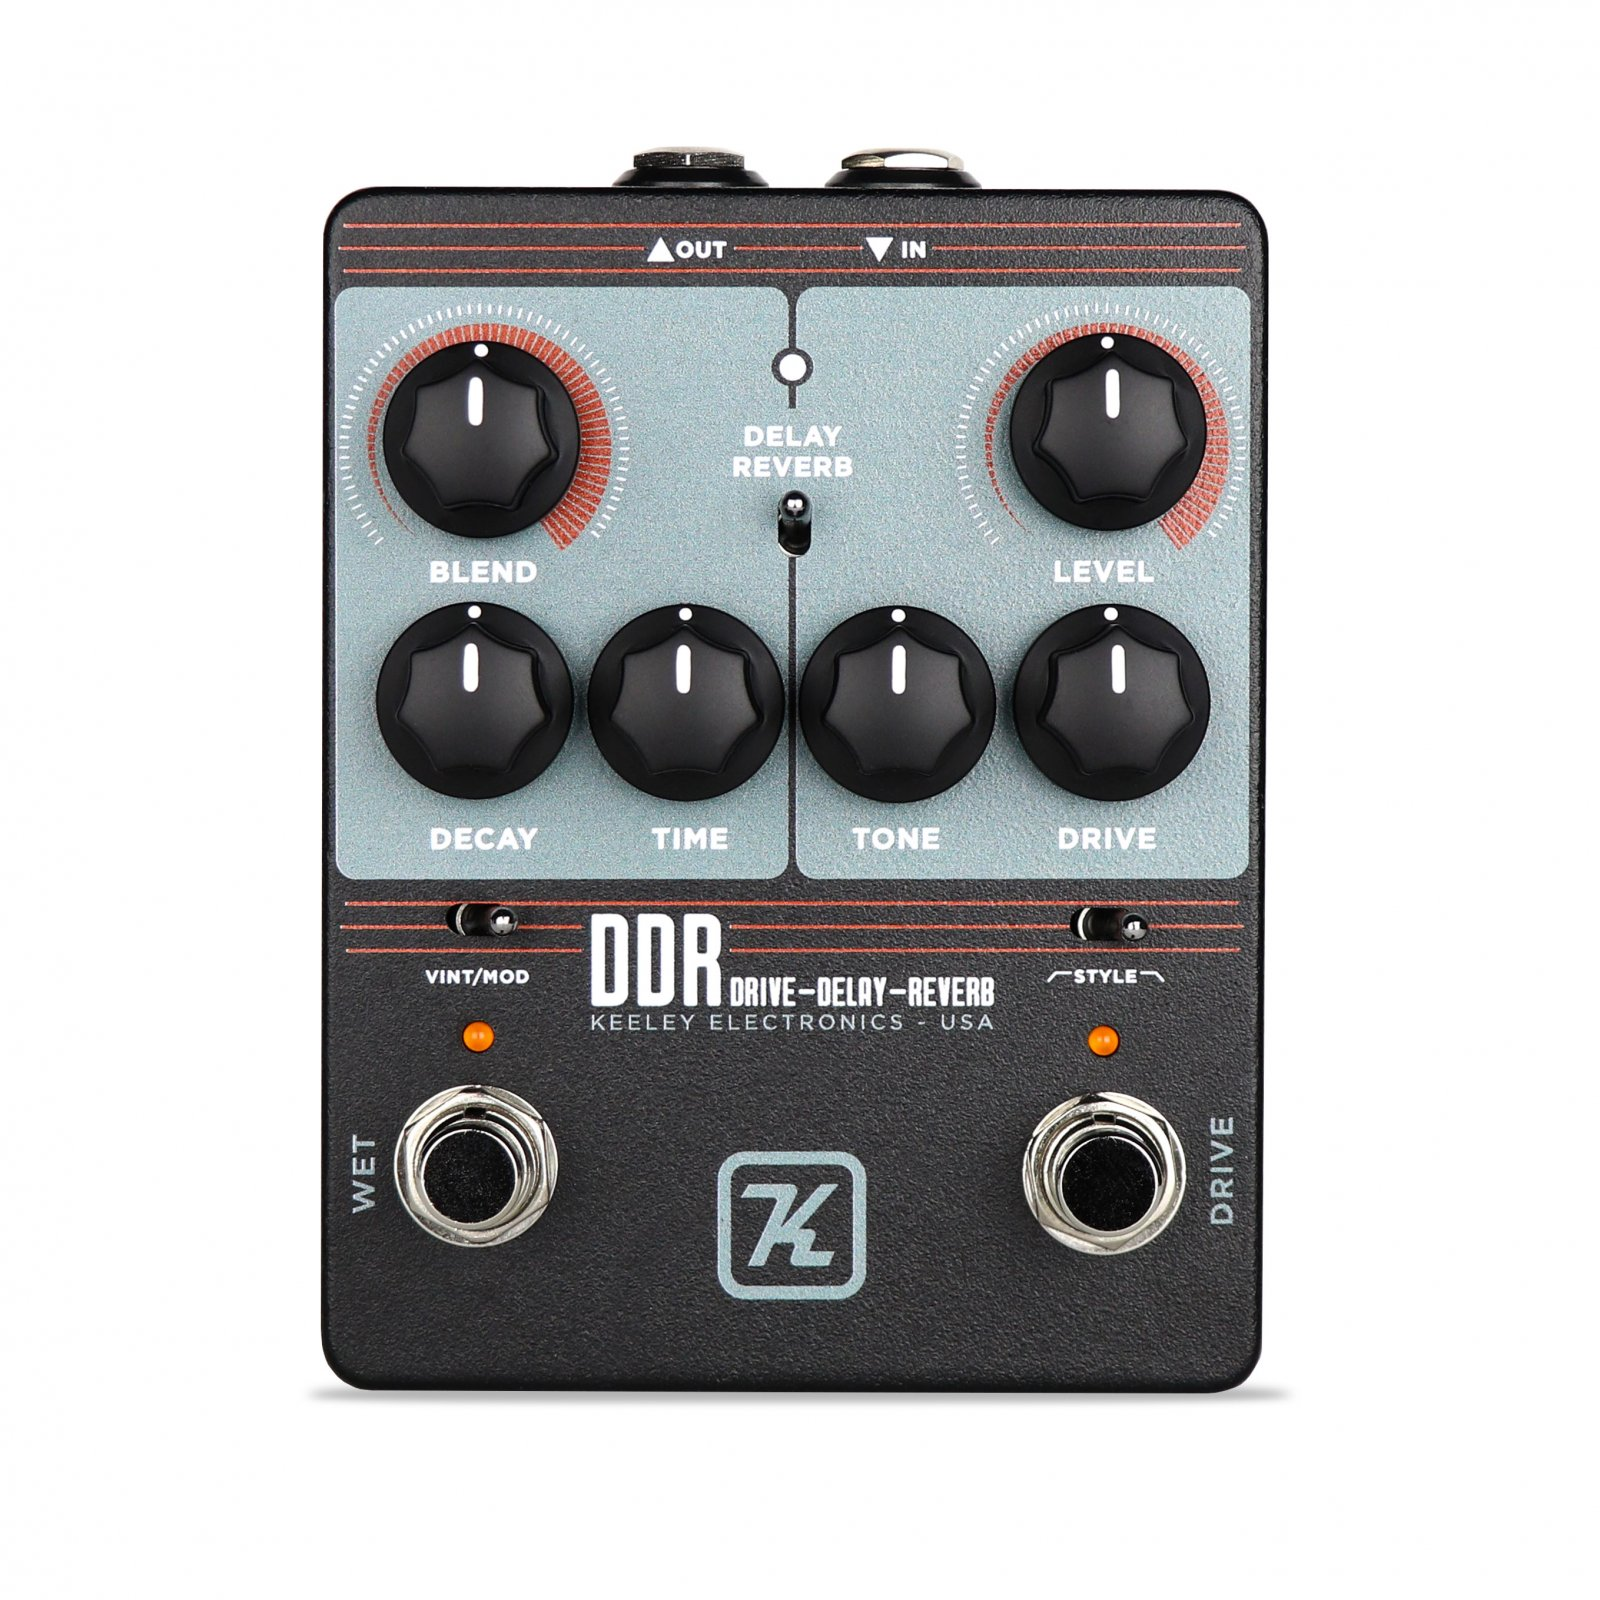 DDR-Drive  Drive Delay Reverb